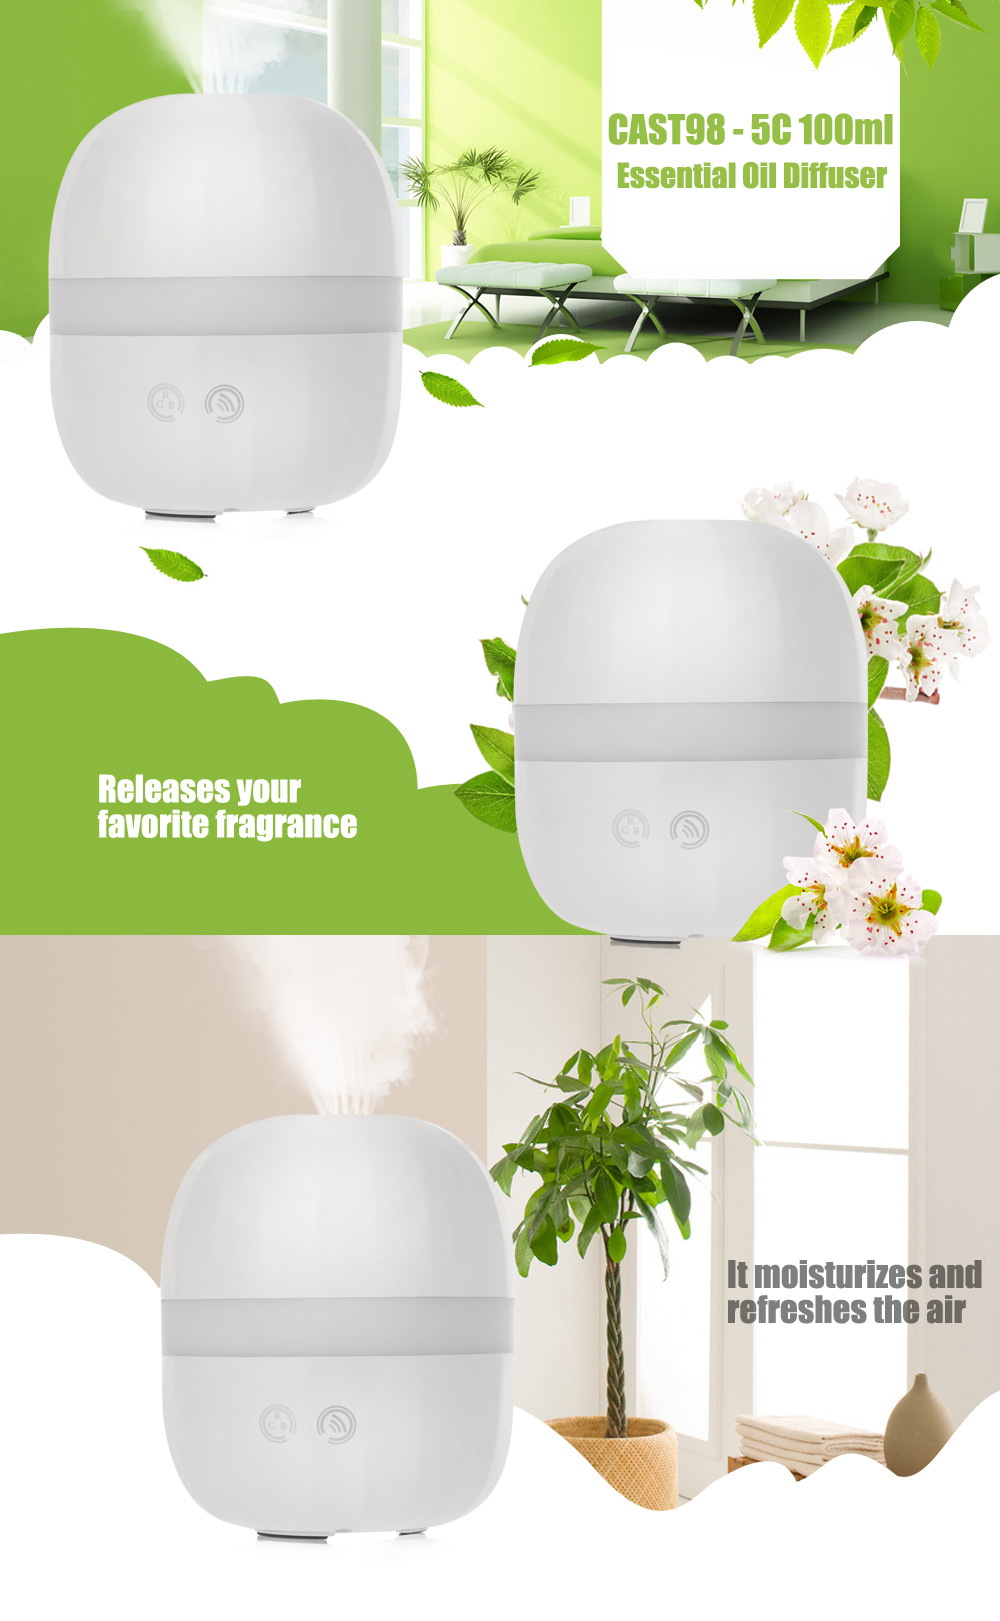 CAST98 - 5C 100ml Essential Oil Diffuser Ultrasonic Cool Mist Humidifier for Home Office